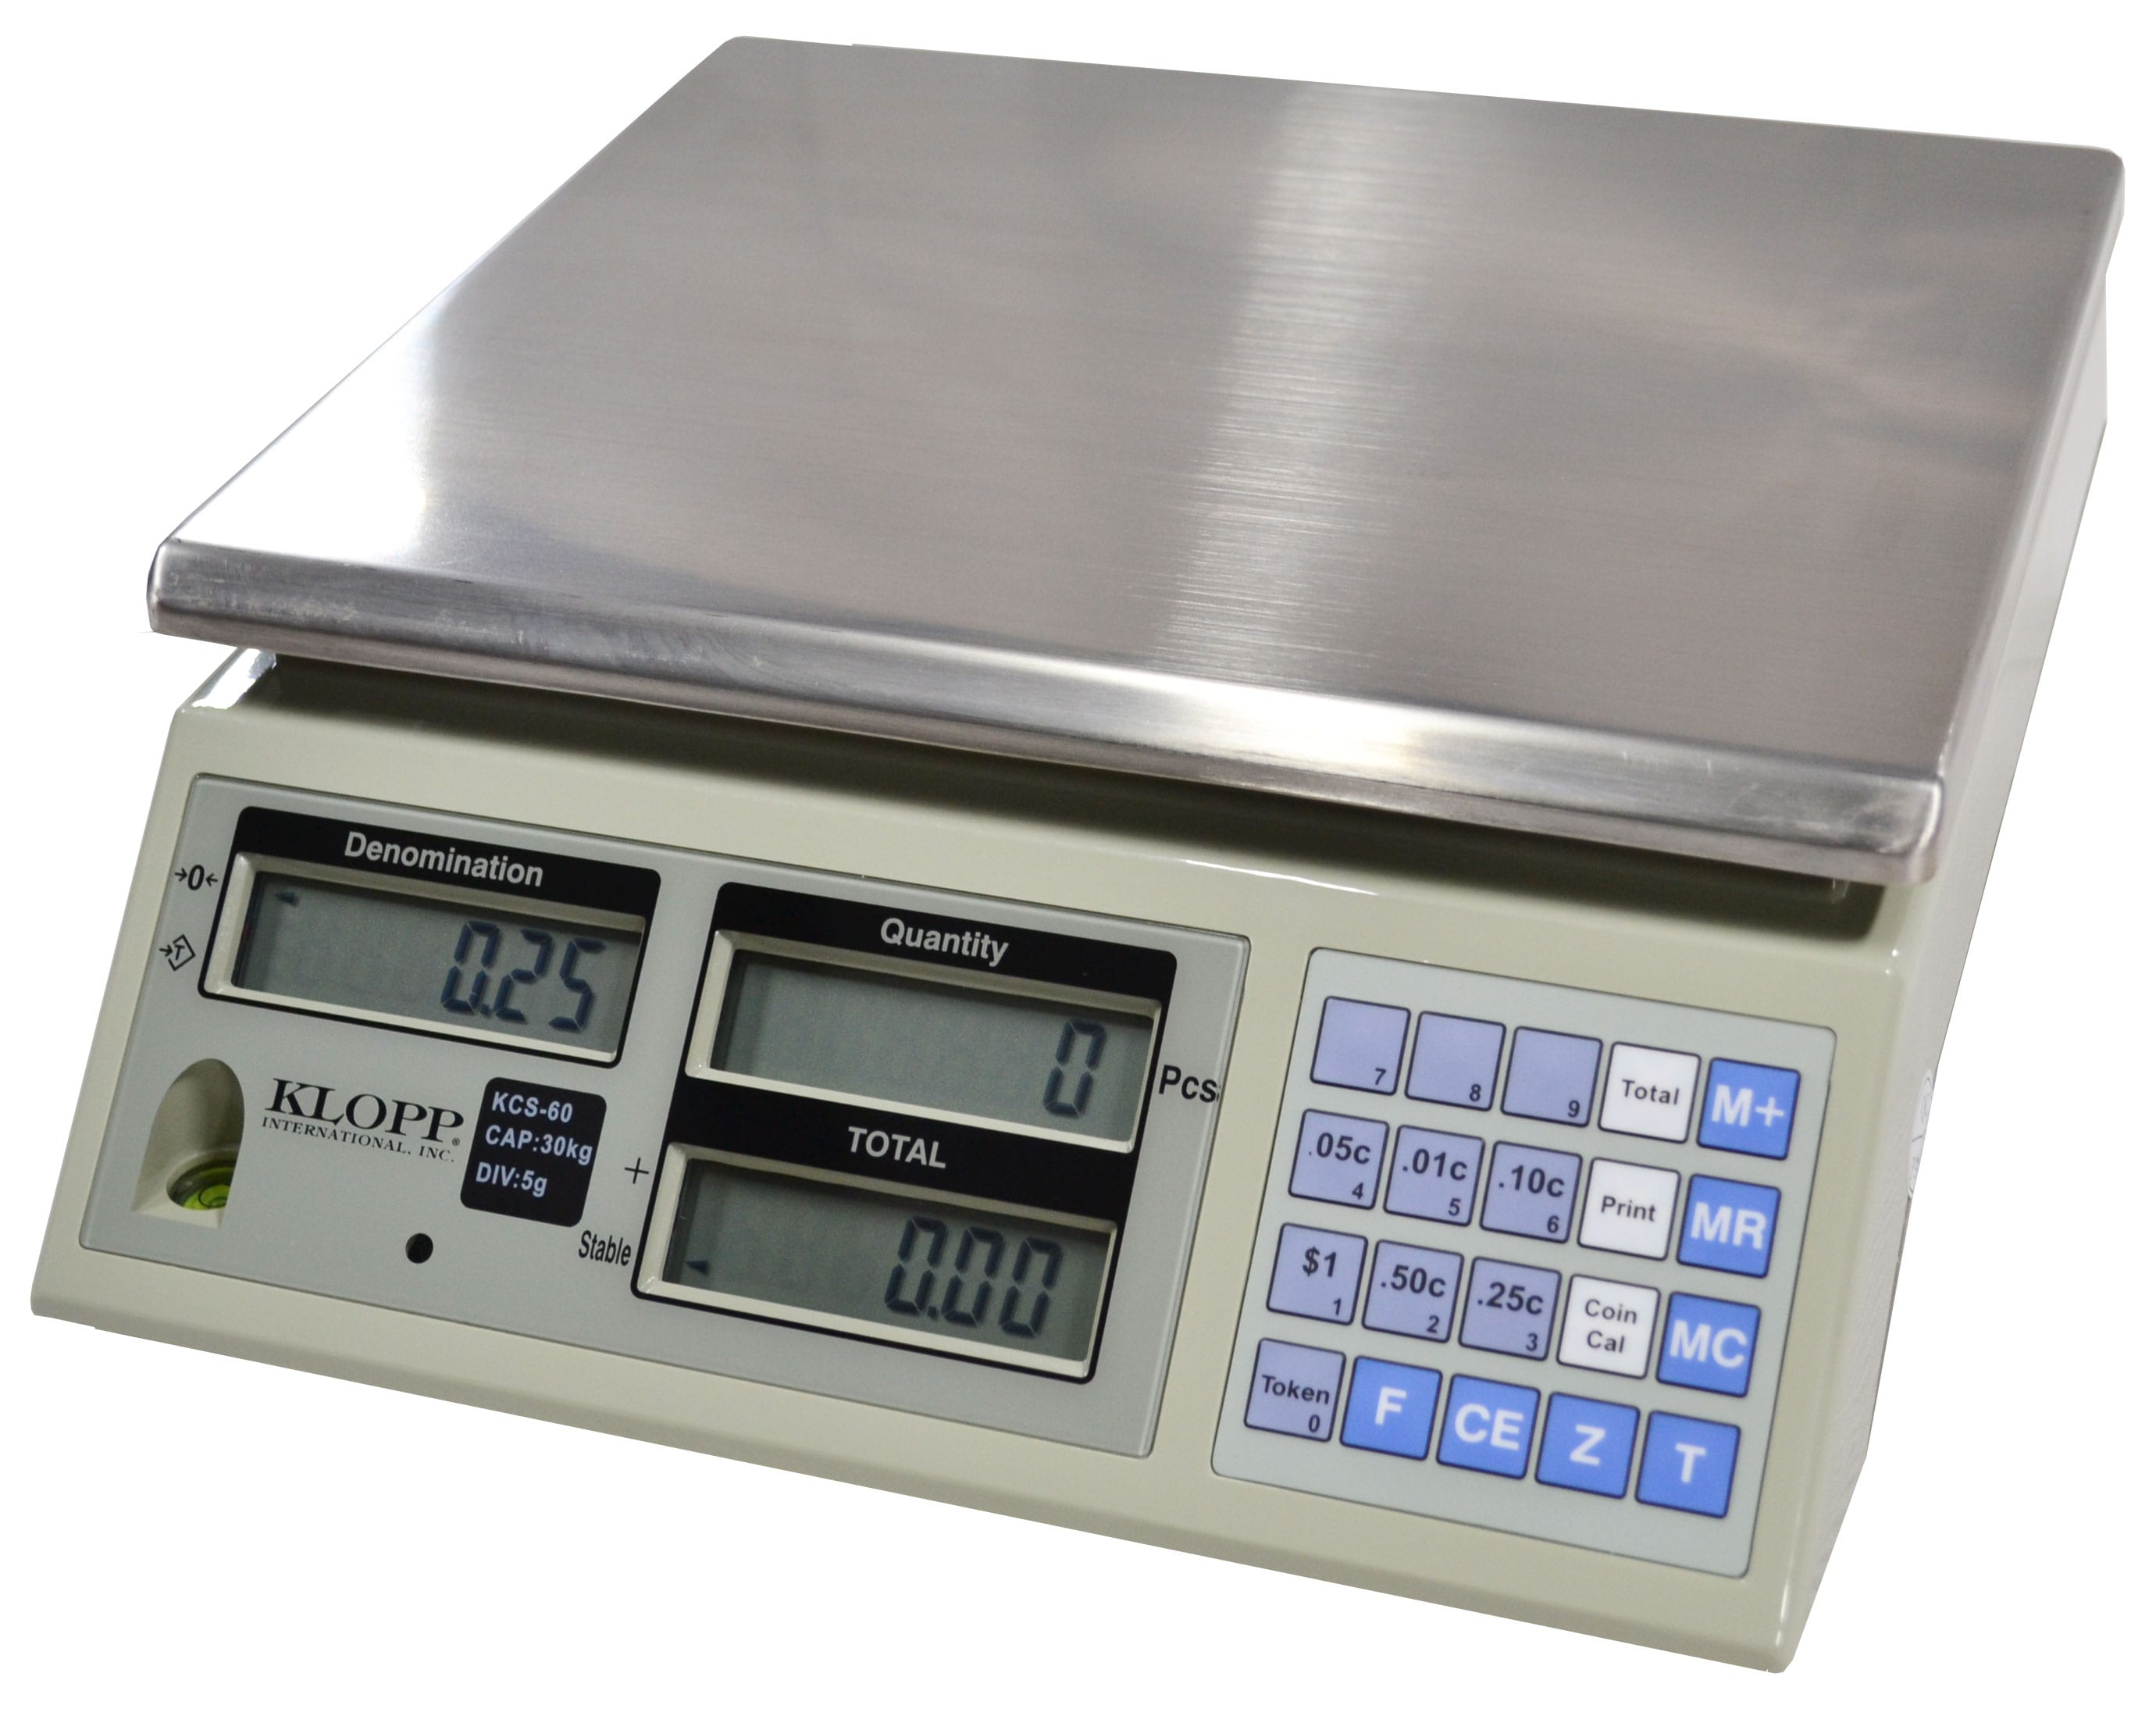 The KLOPP KCS-60 Coin Counting Scale in an easy-to-use, highly accurate scale for weighing coins and tokens